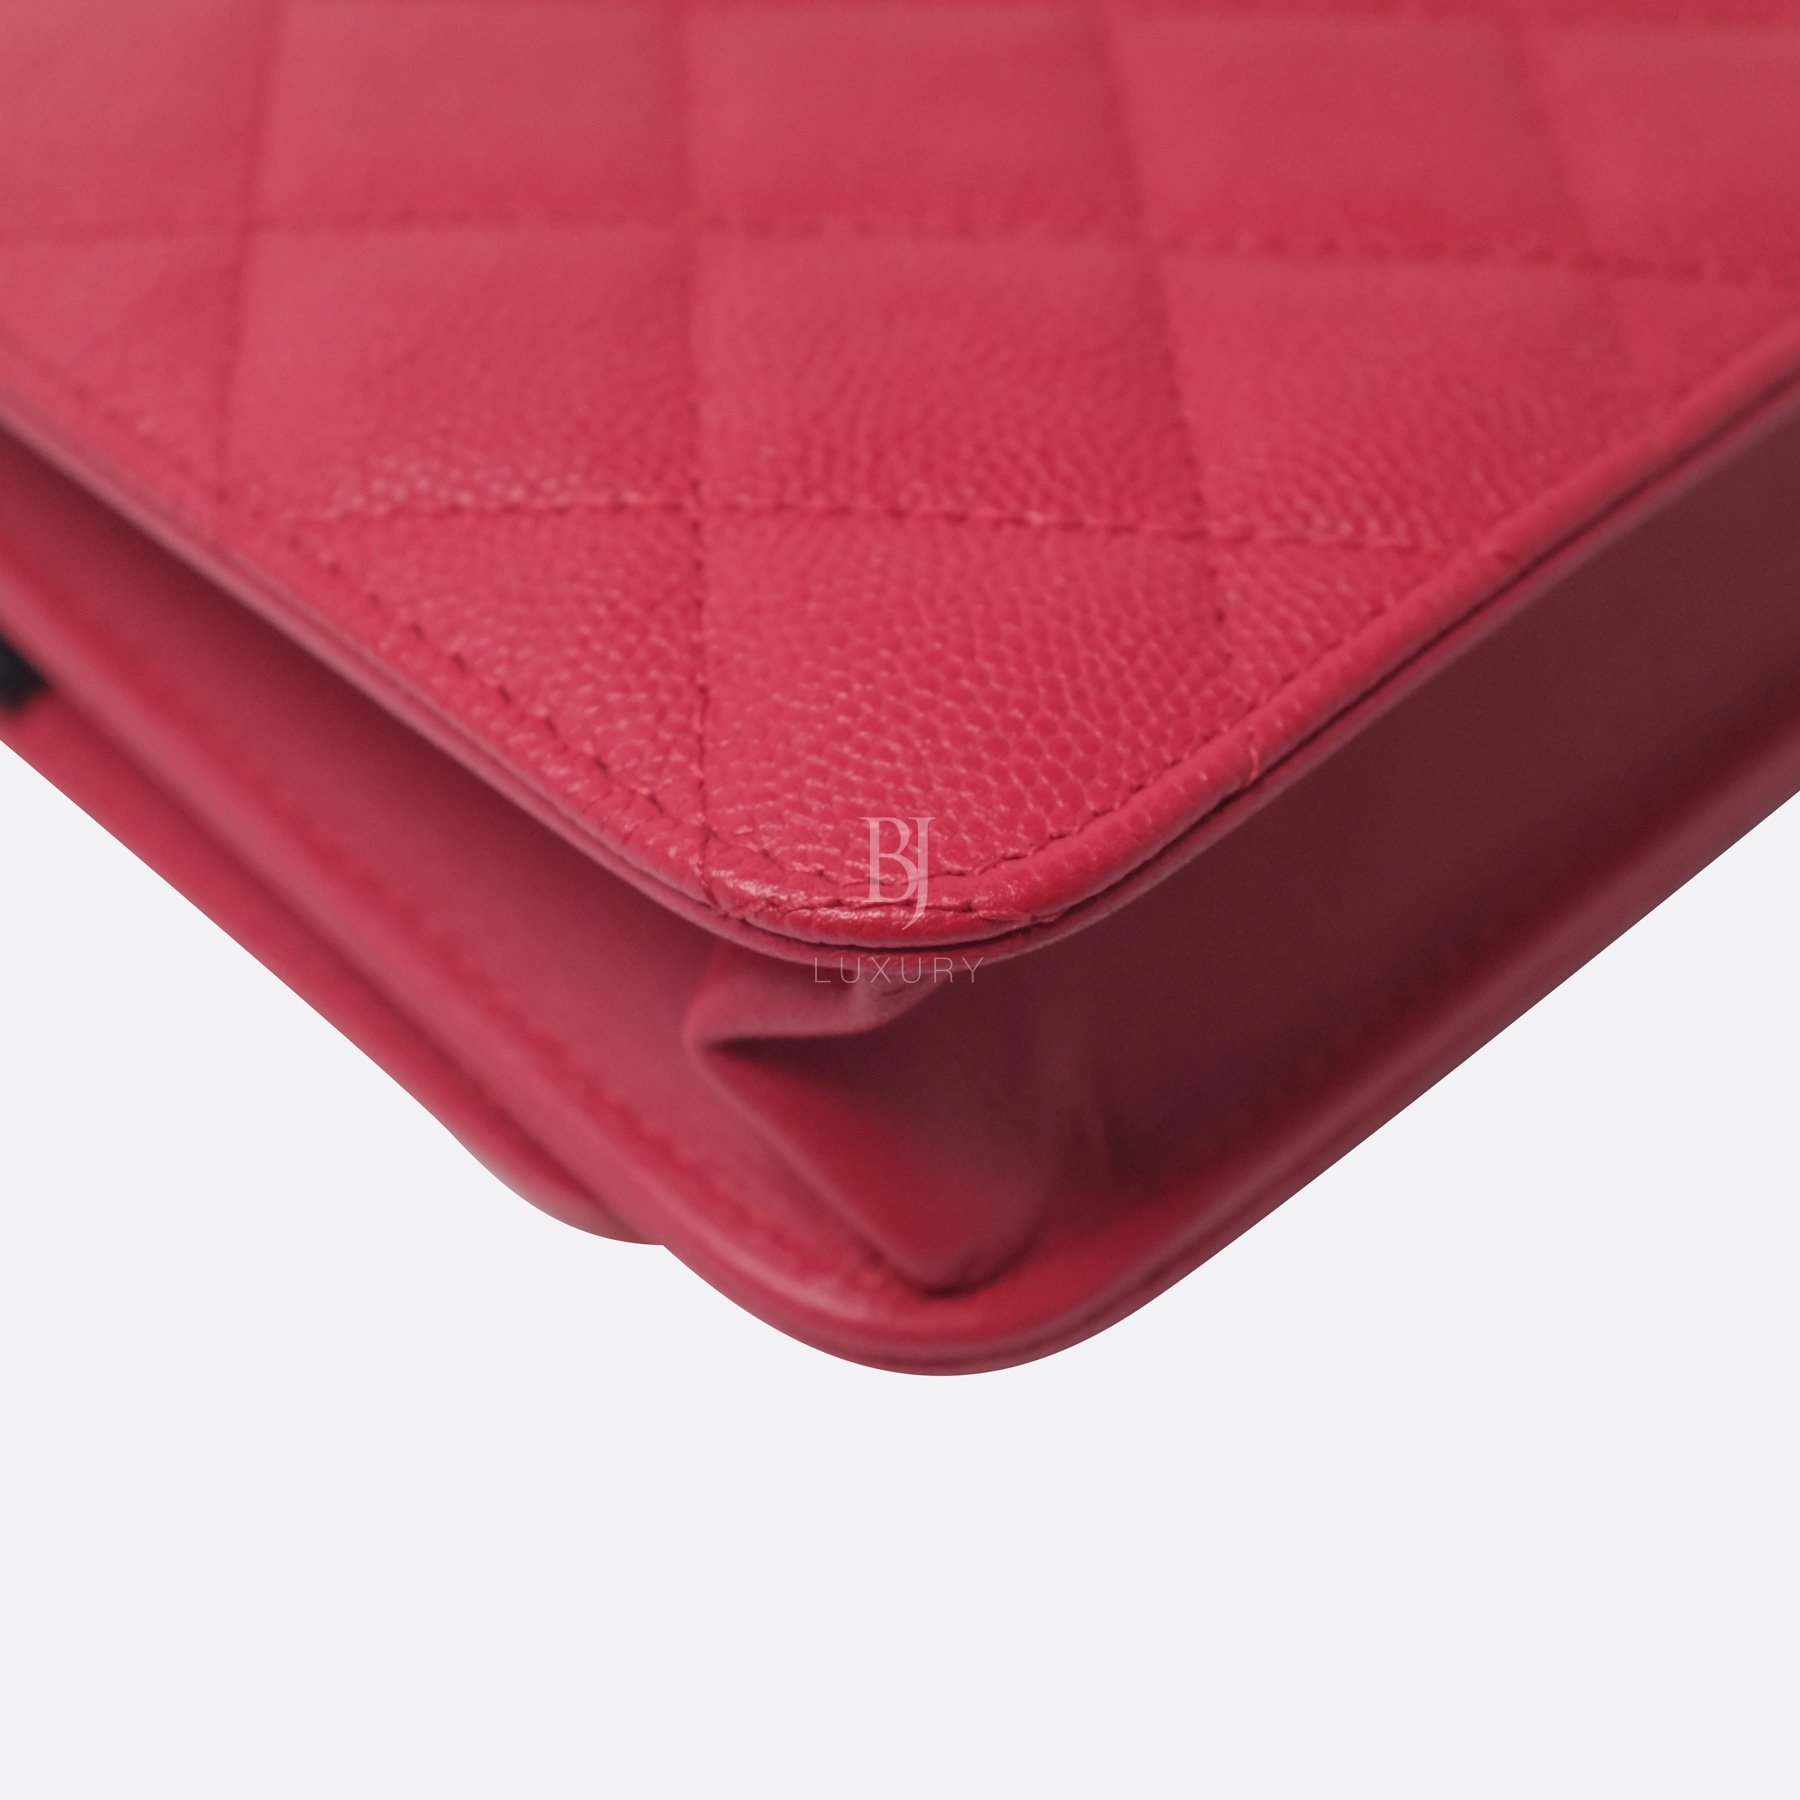 Chanel Wallet On Chain Red Caviar Brushed Gold BJ Luxury 10.jpg